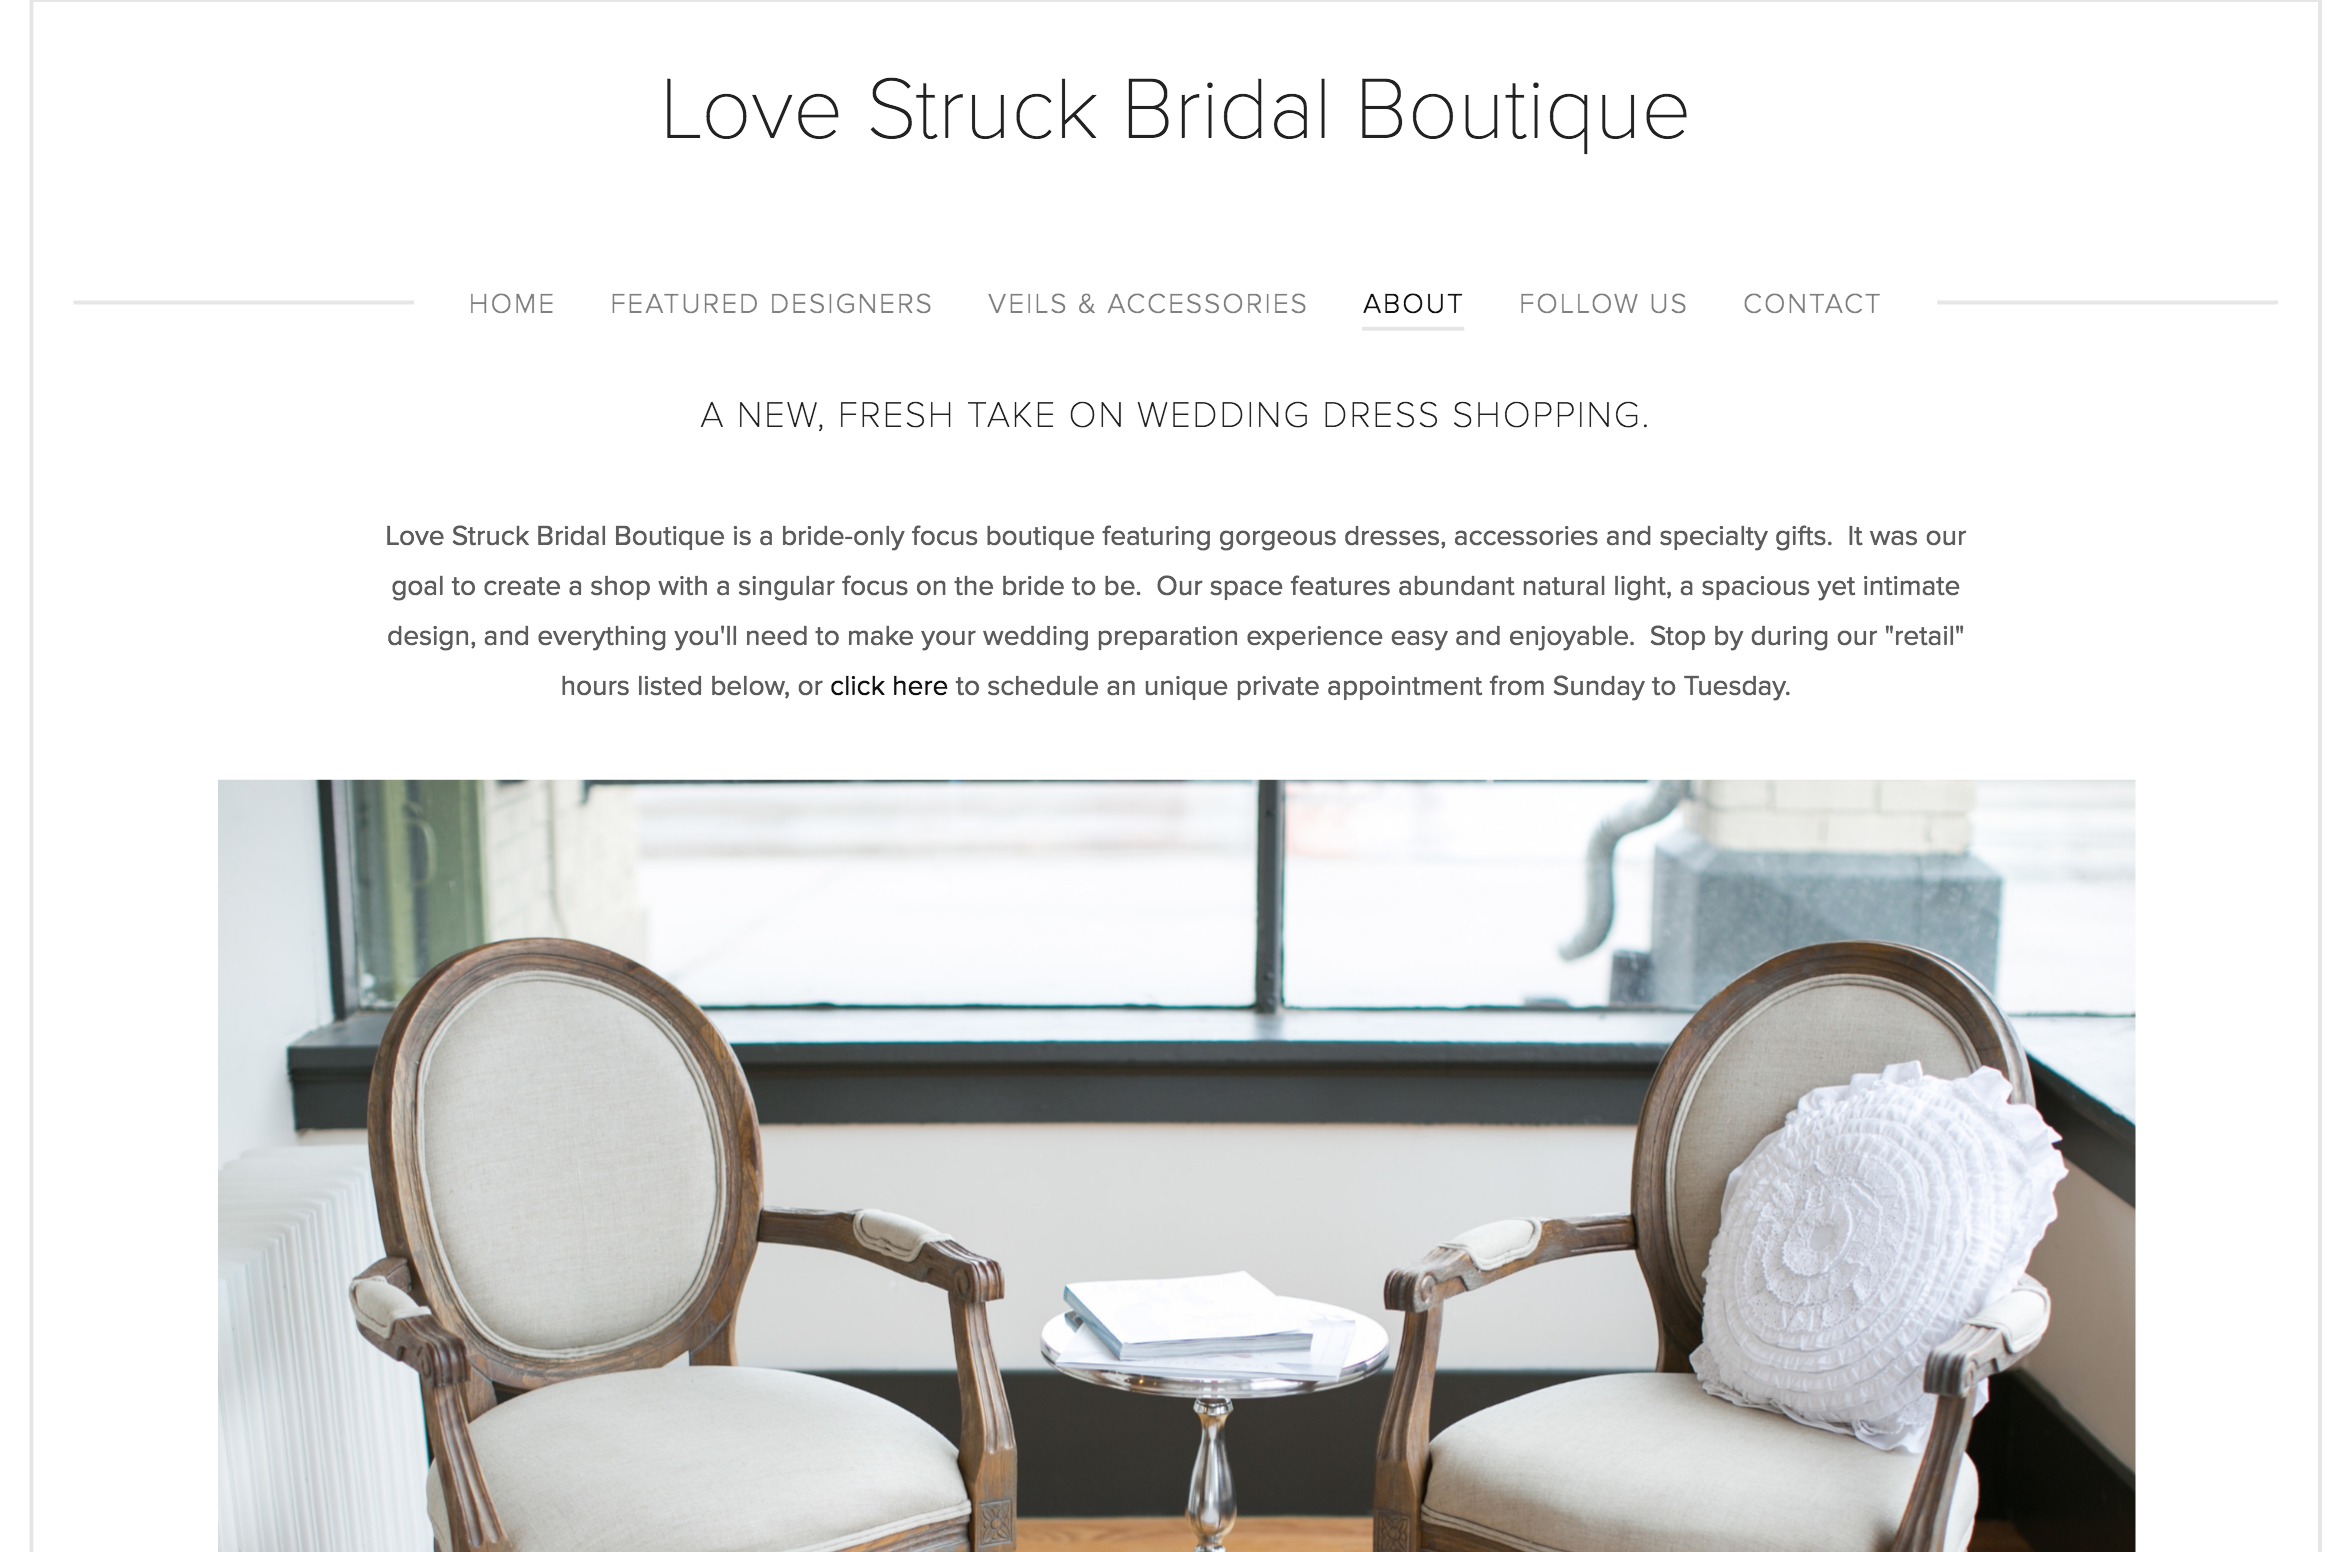 Love Struck Bridal Boutique